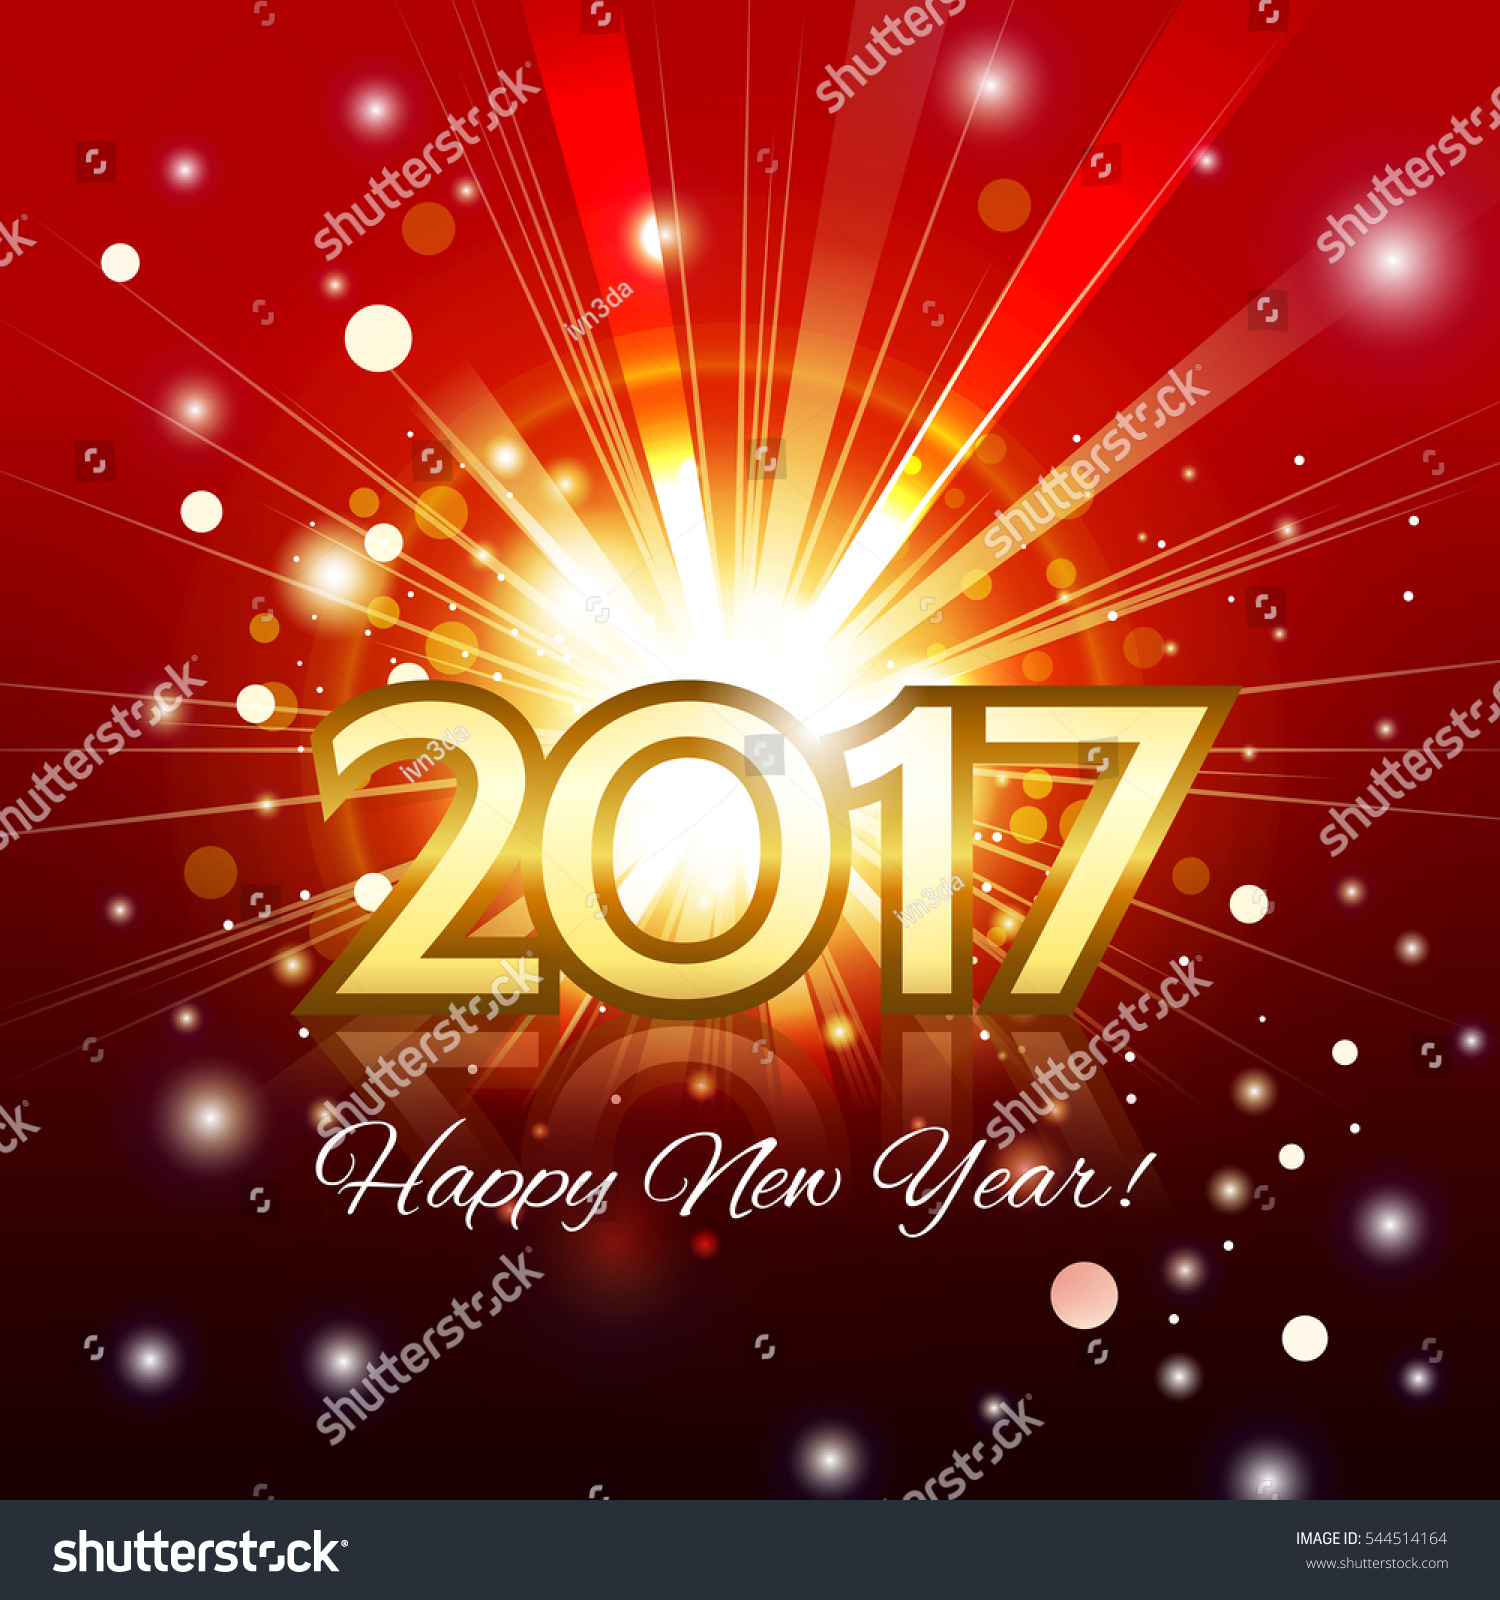 2018 Happy New Year Greeting Background With Spotlights Vector Ez